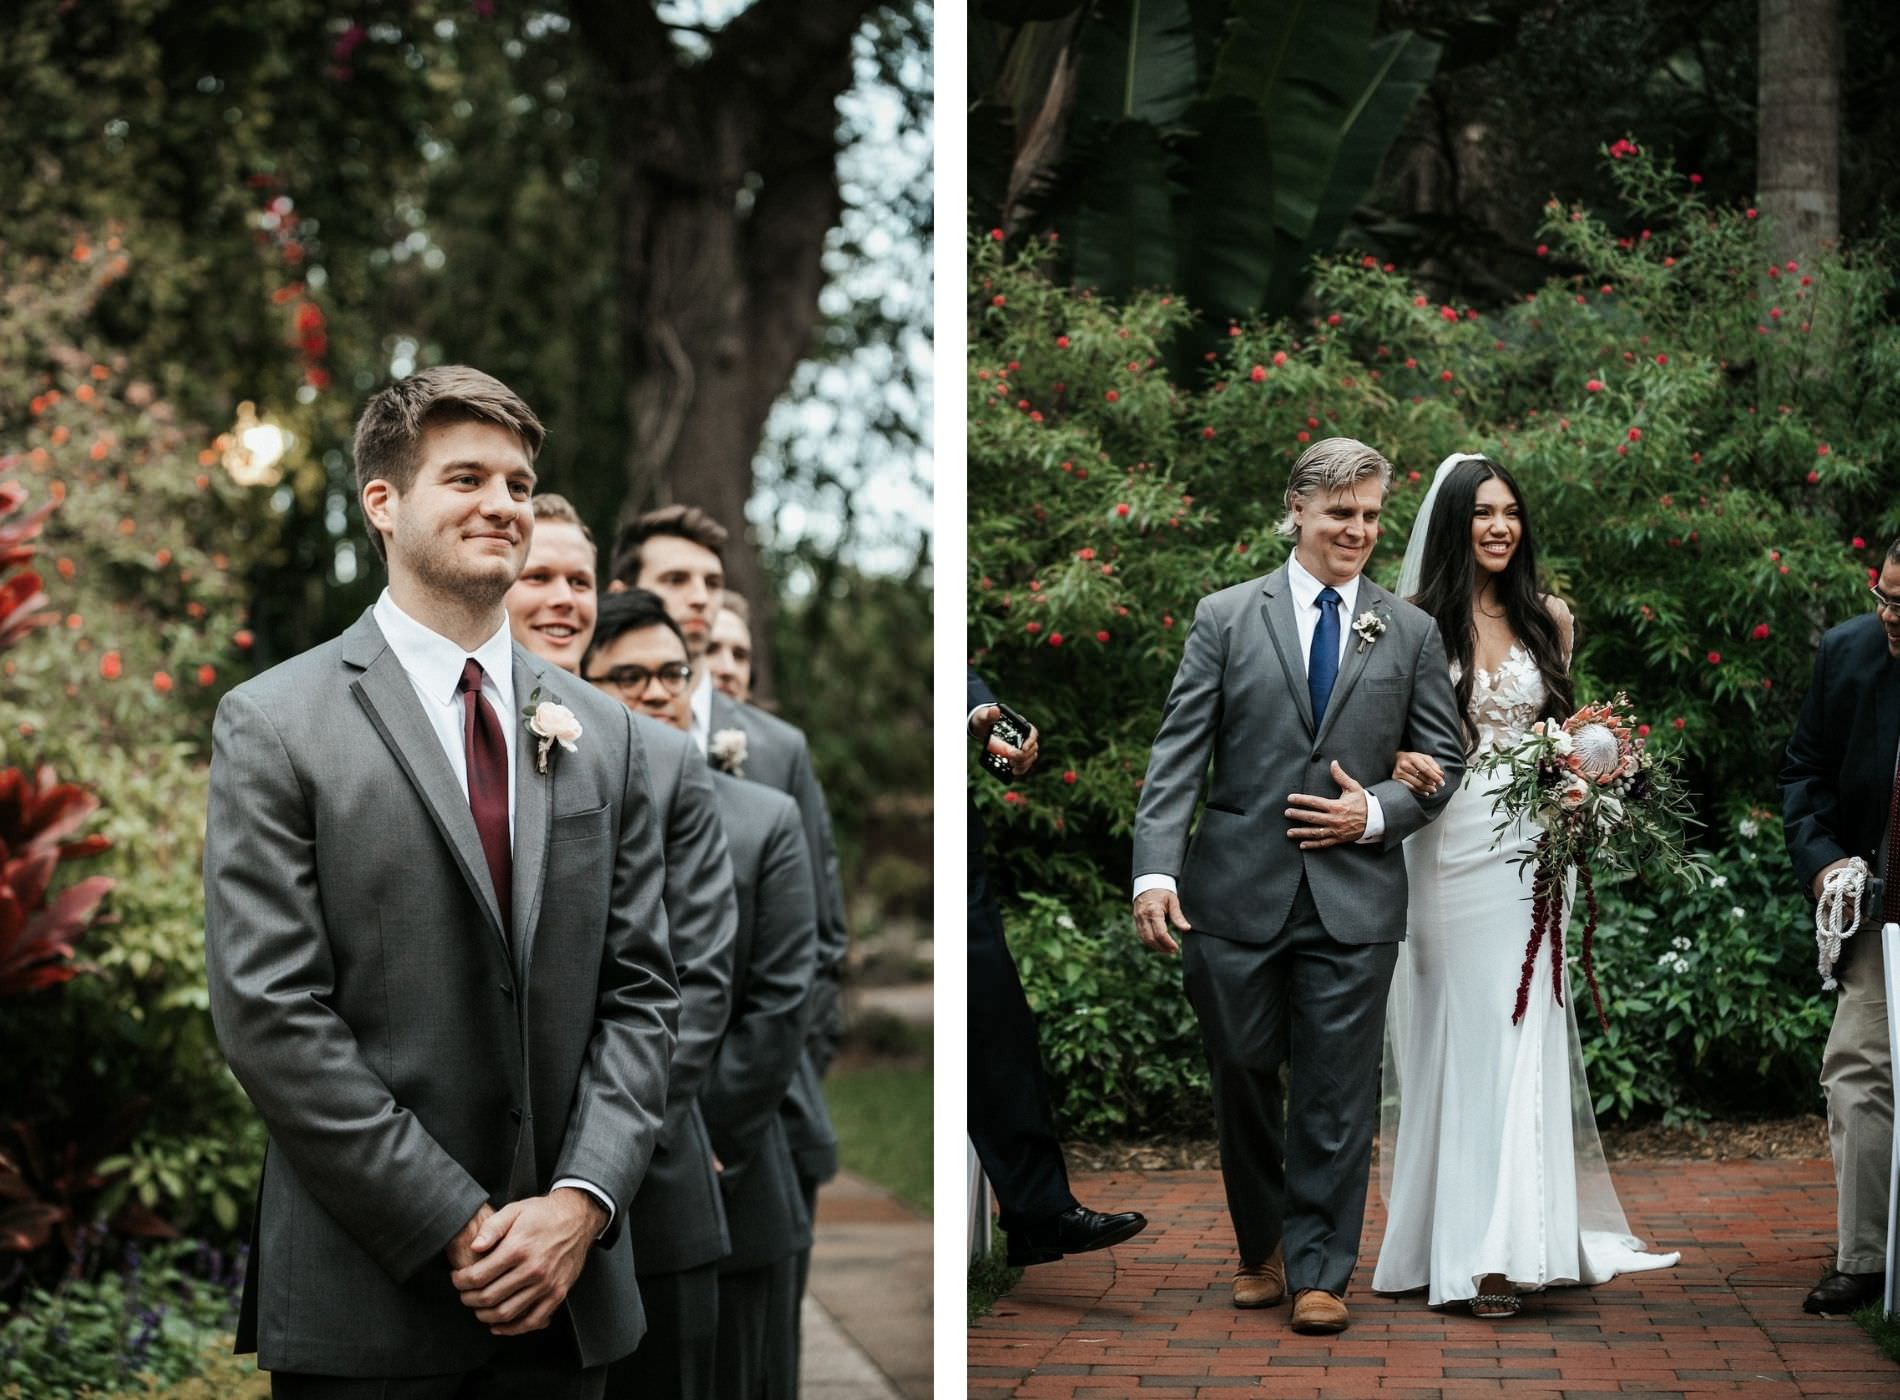 Tampa Bay Bride and Groom During Wedding Processional at Sunken Gardens Ceremony, Downtown St. Pete Bride and Father Walk Down the Aisle, Groom Wearing Charcoal Gray Suit with Dark Burgundy and Wine Tie | Florida Wedding Florist Posies Flower Truck | Tampa Wedding Planner John Campbell Weddings